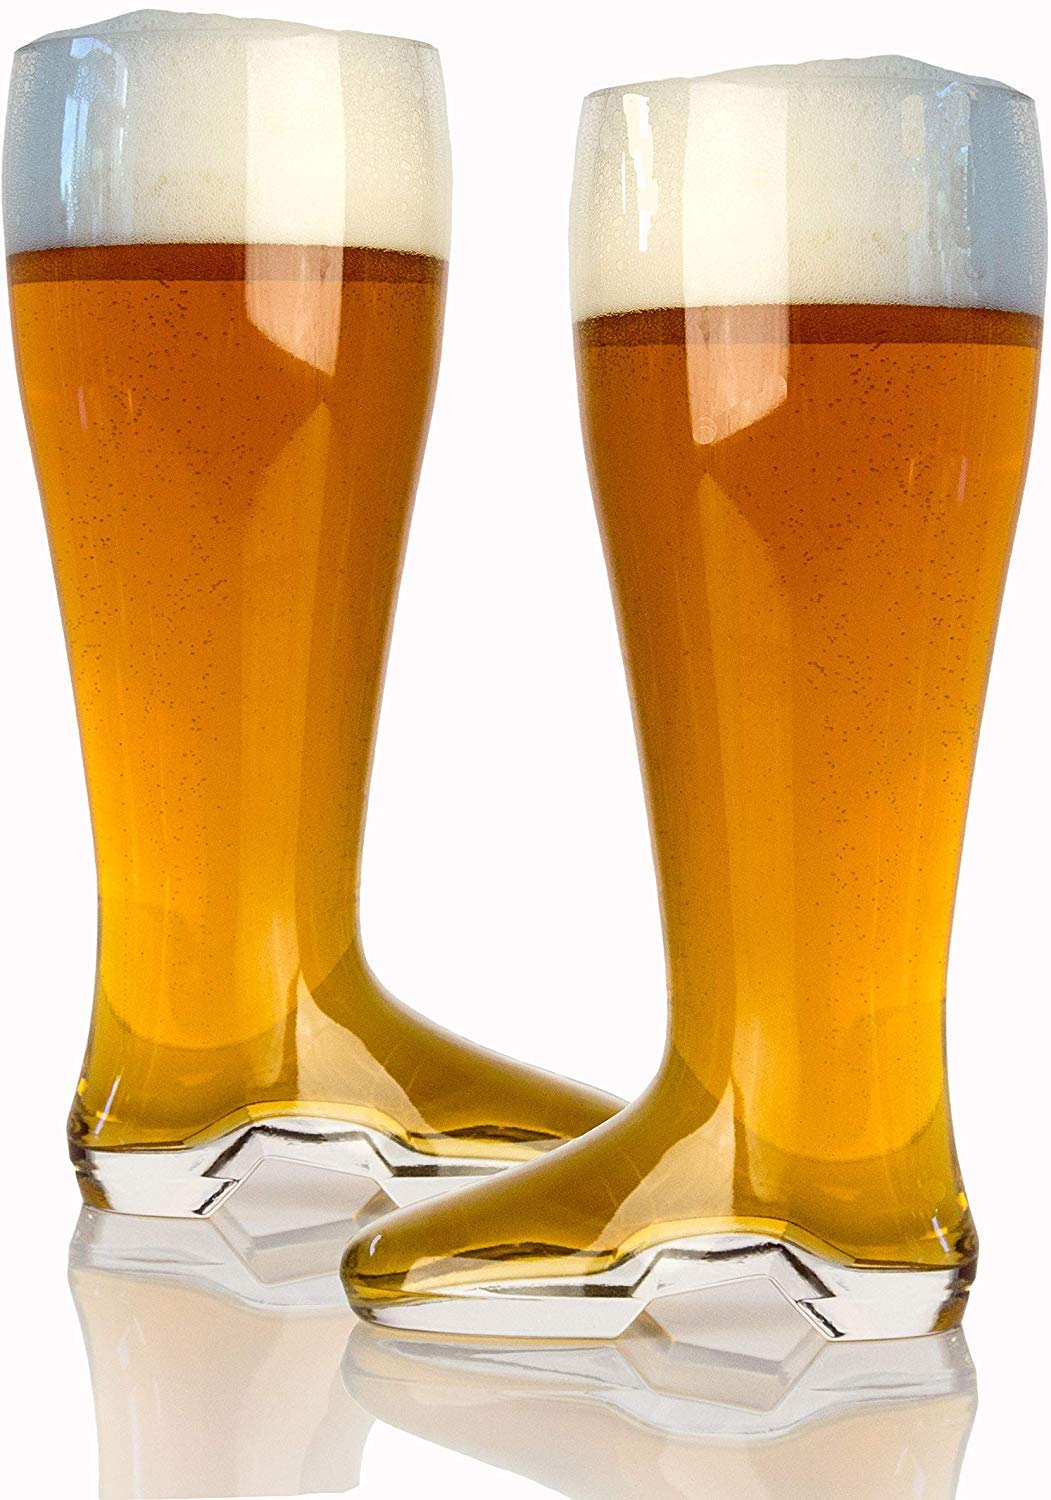 Domestic Corner - Das Boot - 2 Liter Large Beer Boot Oktoberfest Drinking Mug - Holds Over 5 Beers